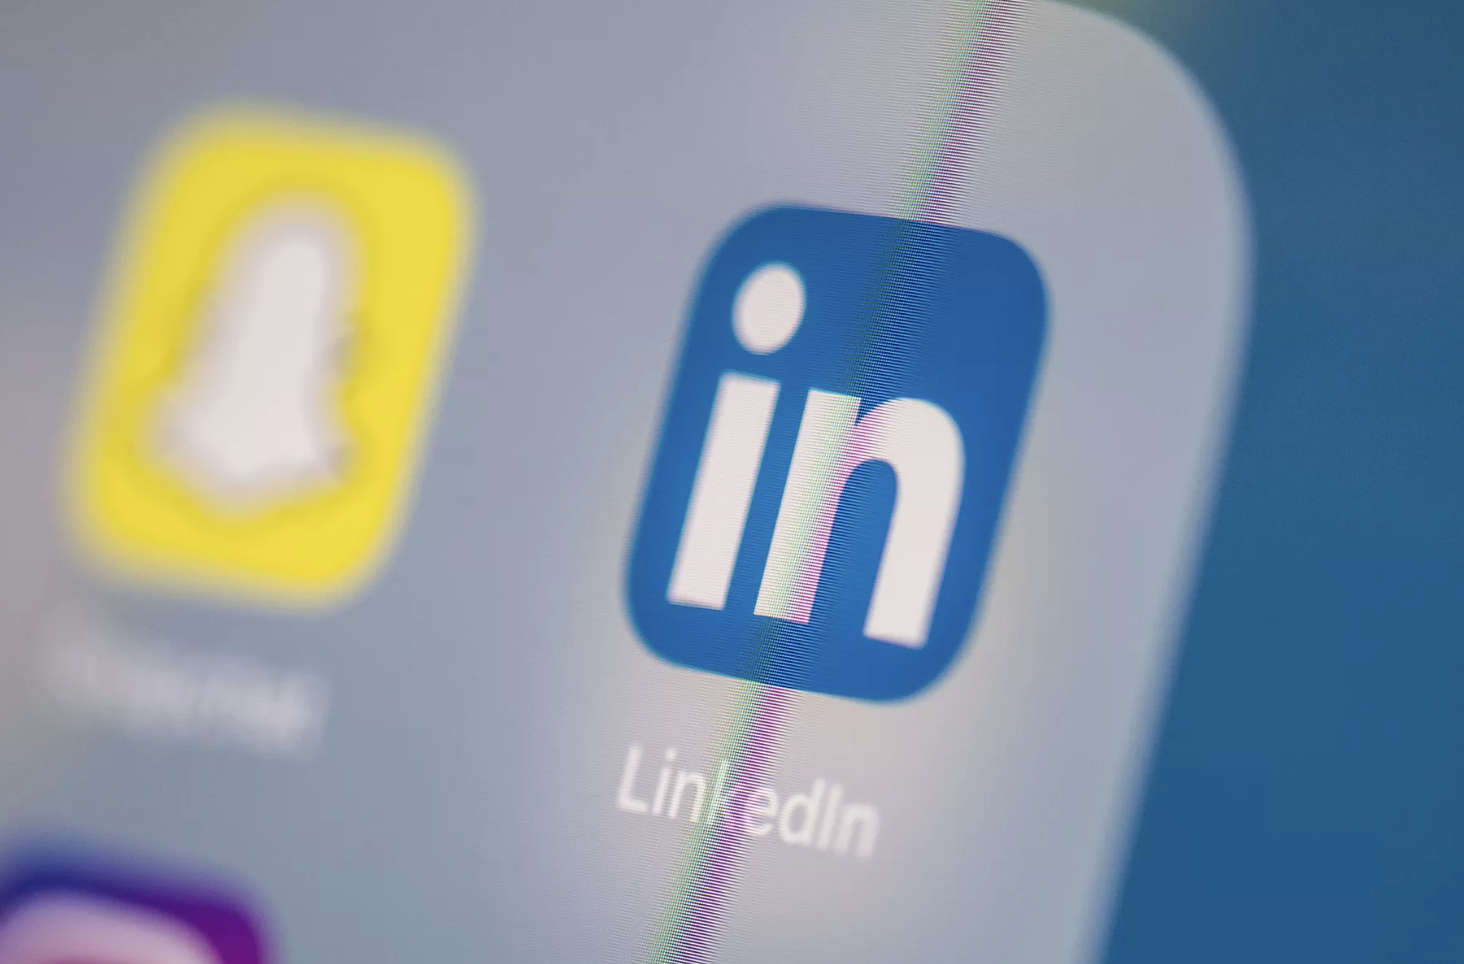 LinkedIn is testing Snapchat-like stories because that's the world we live in now